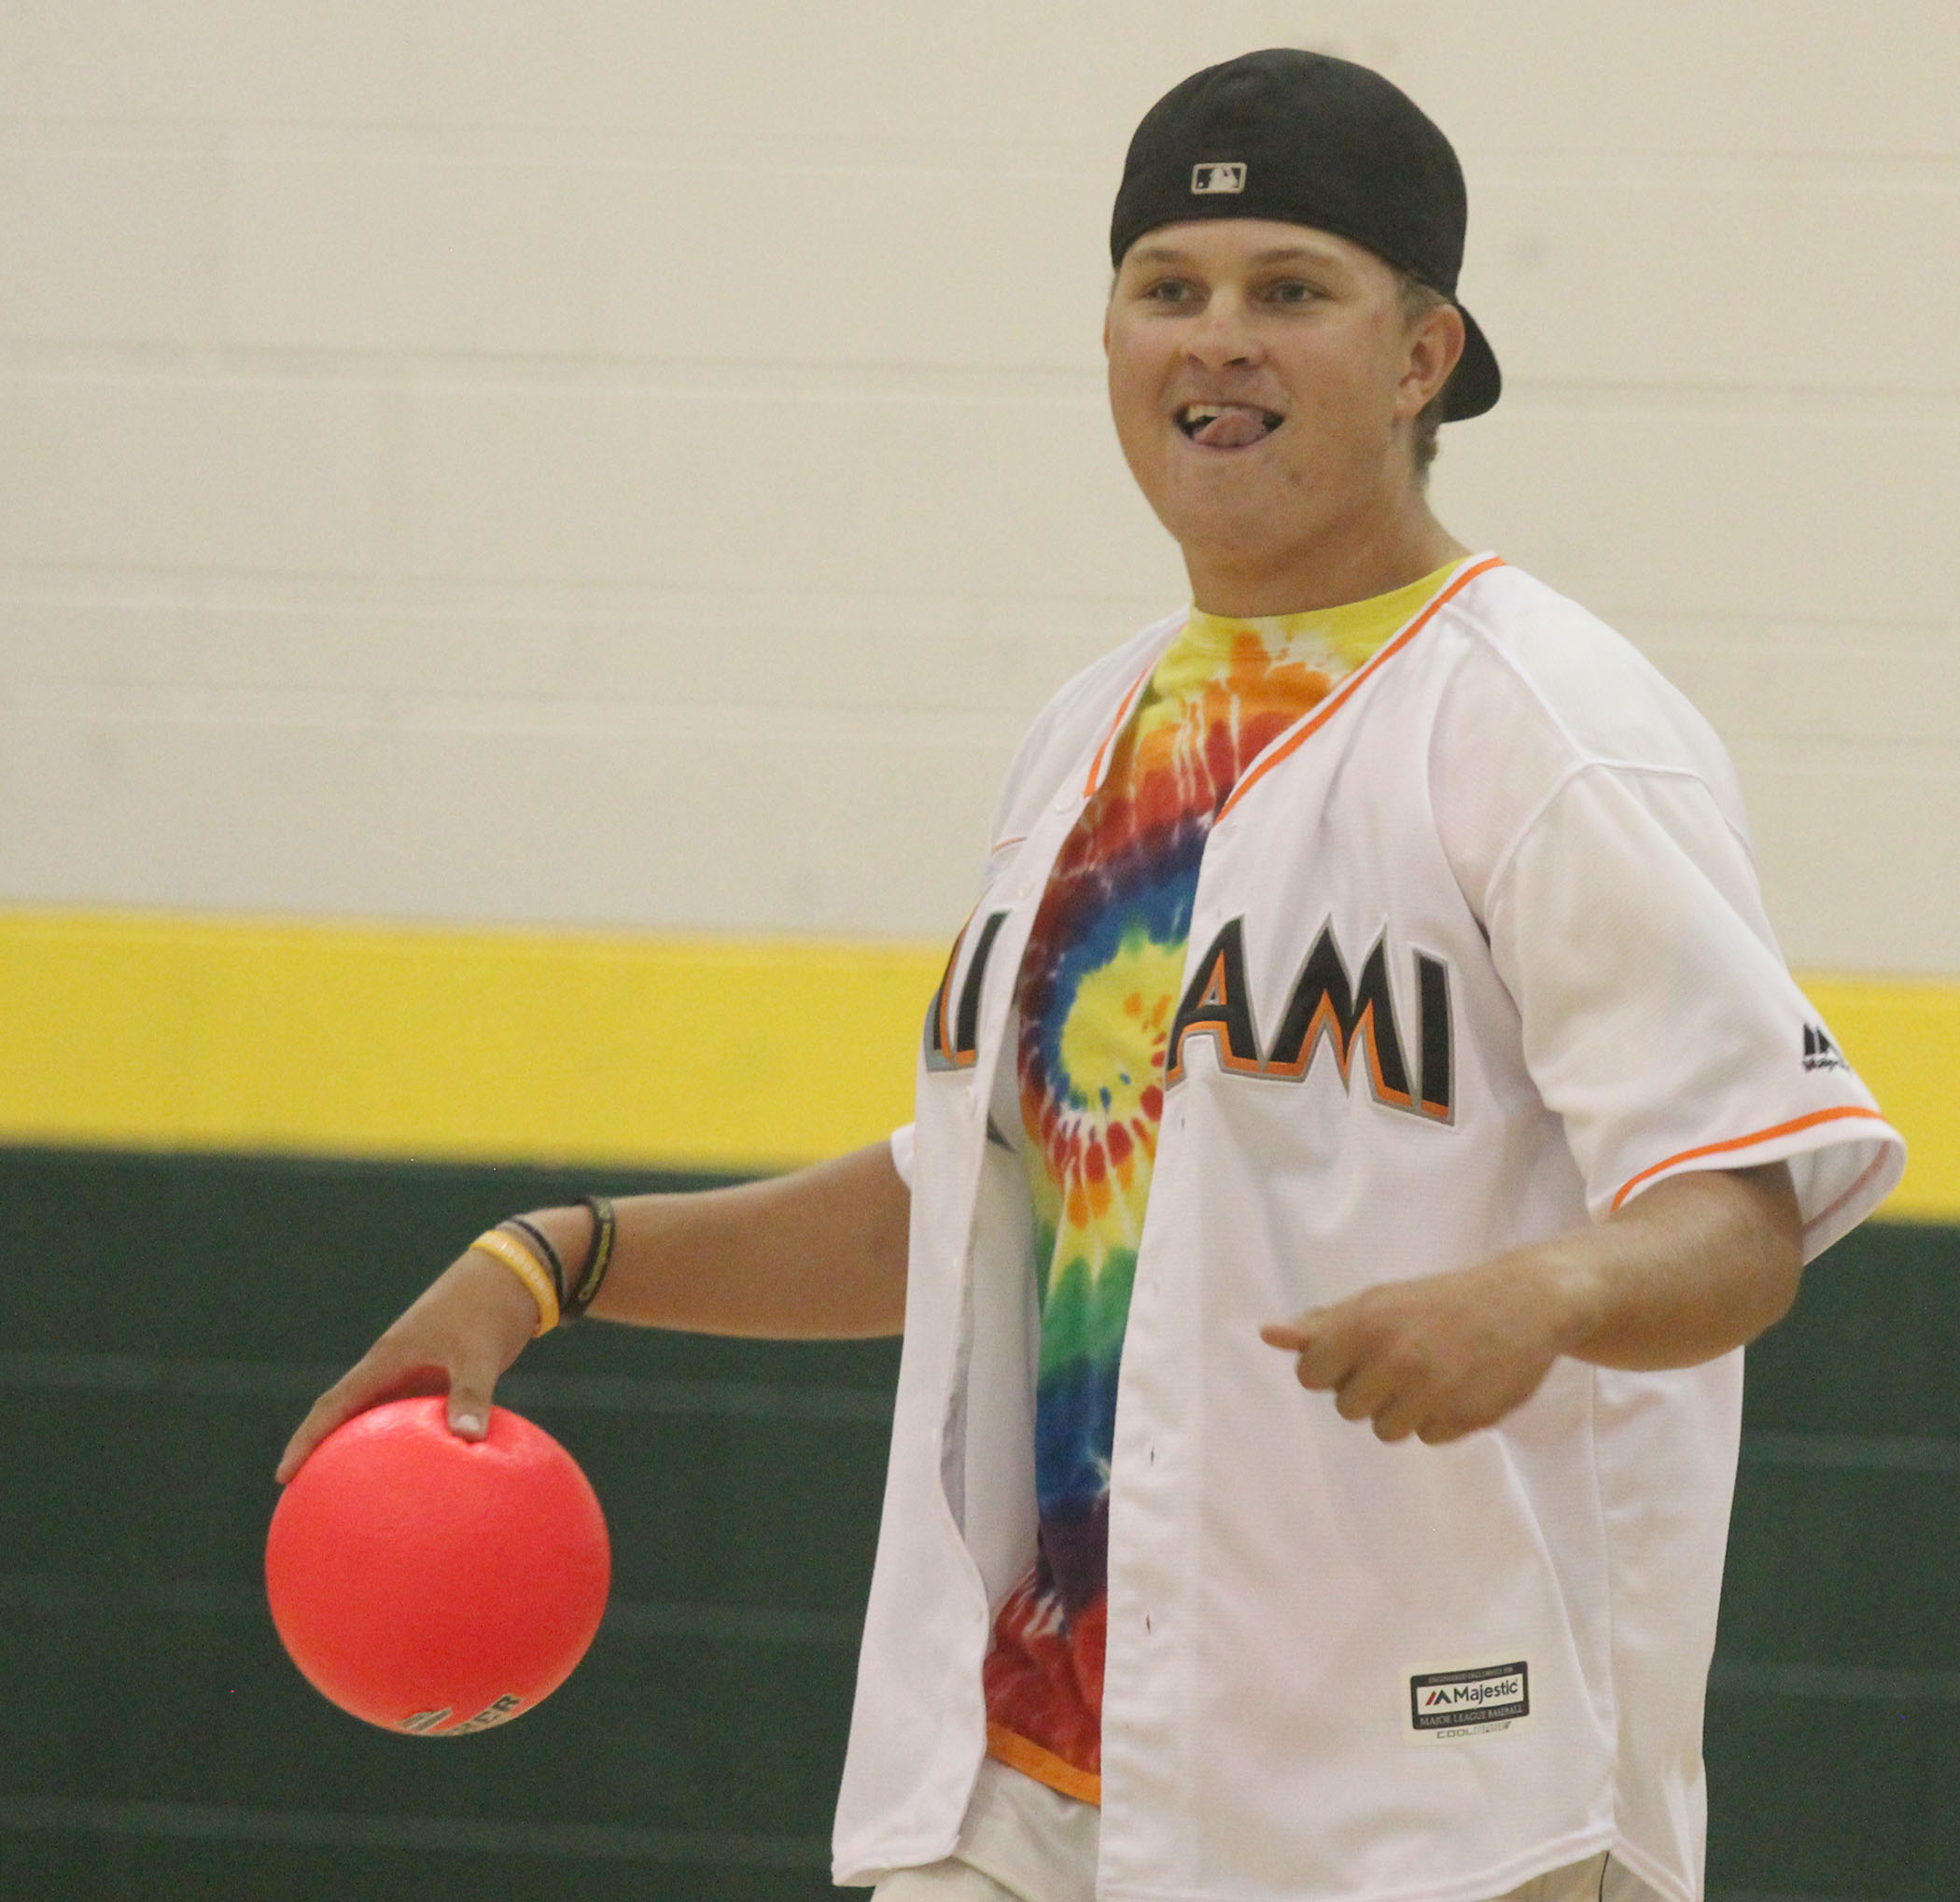 Senior Jack Liffrig celebrates after a team win in the annual homecoming dodgeball tournament.